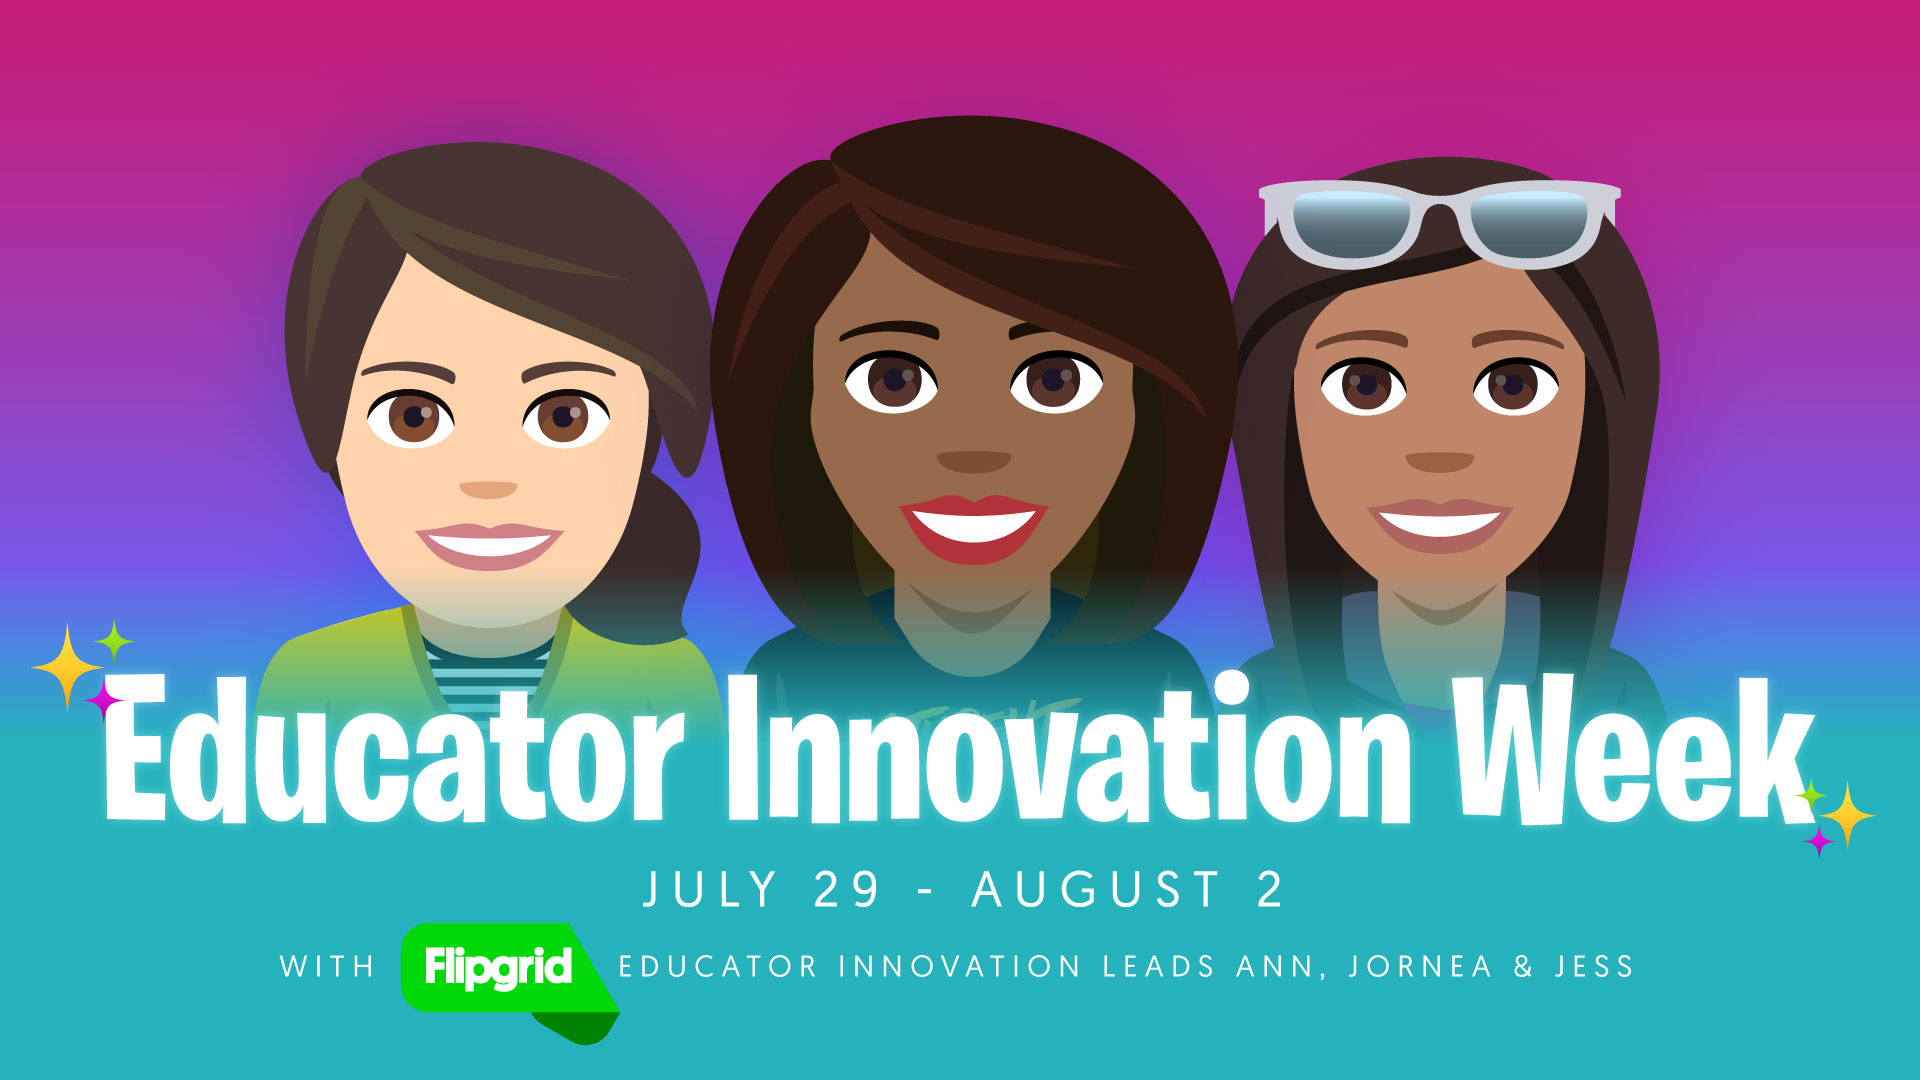 educatorInnovationWeek_v02.jpg